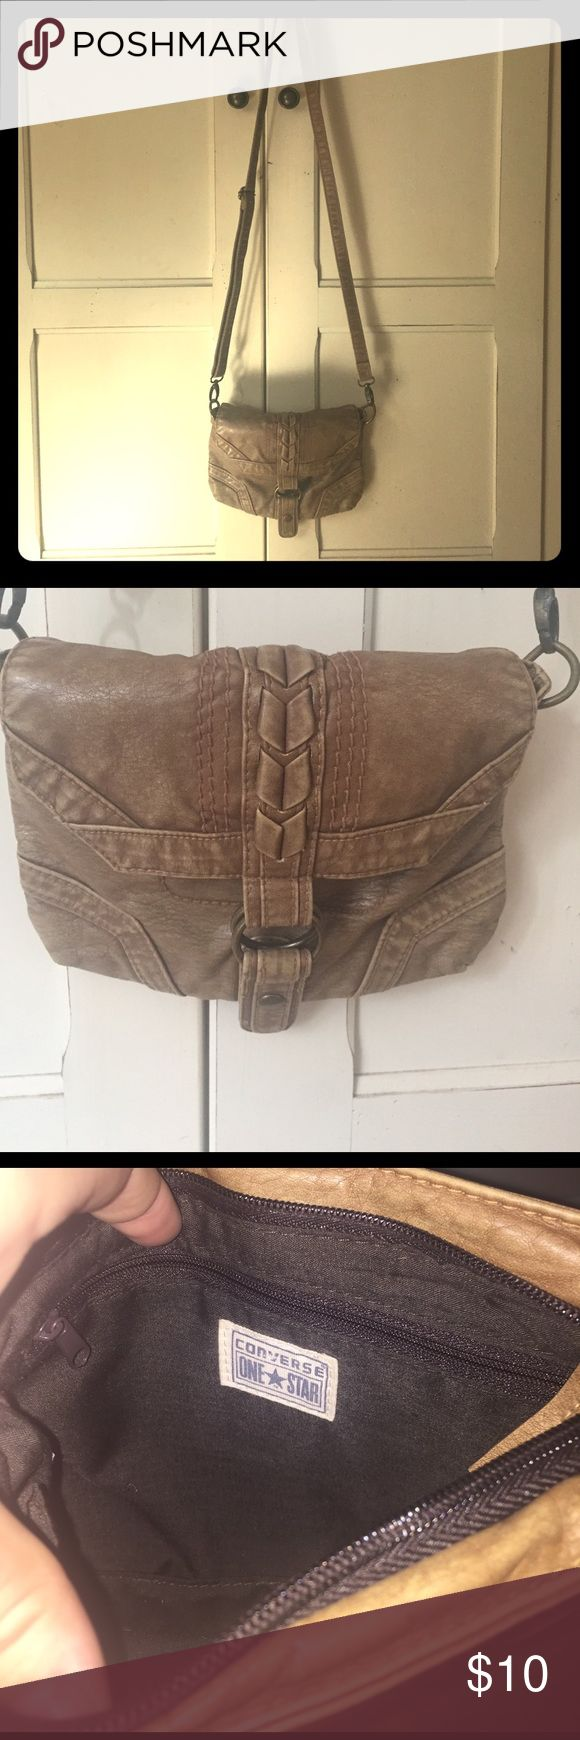 Converse Crossbody Purse Excellent condition, no signs of wear. Converse Bags Crossbody Bags